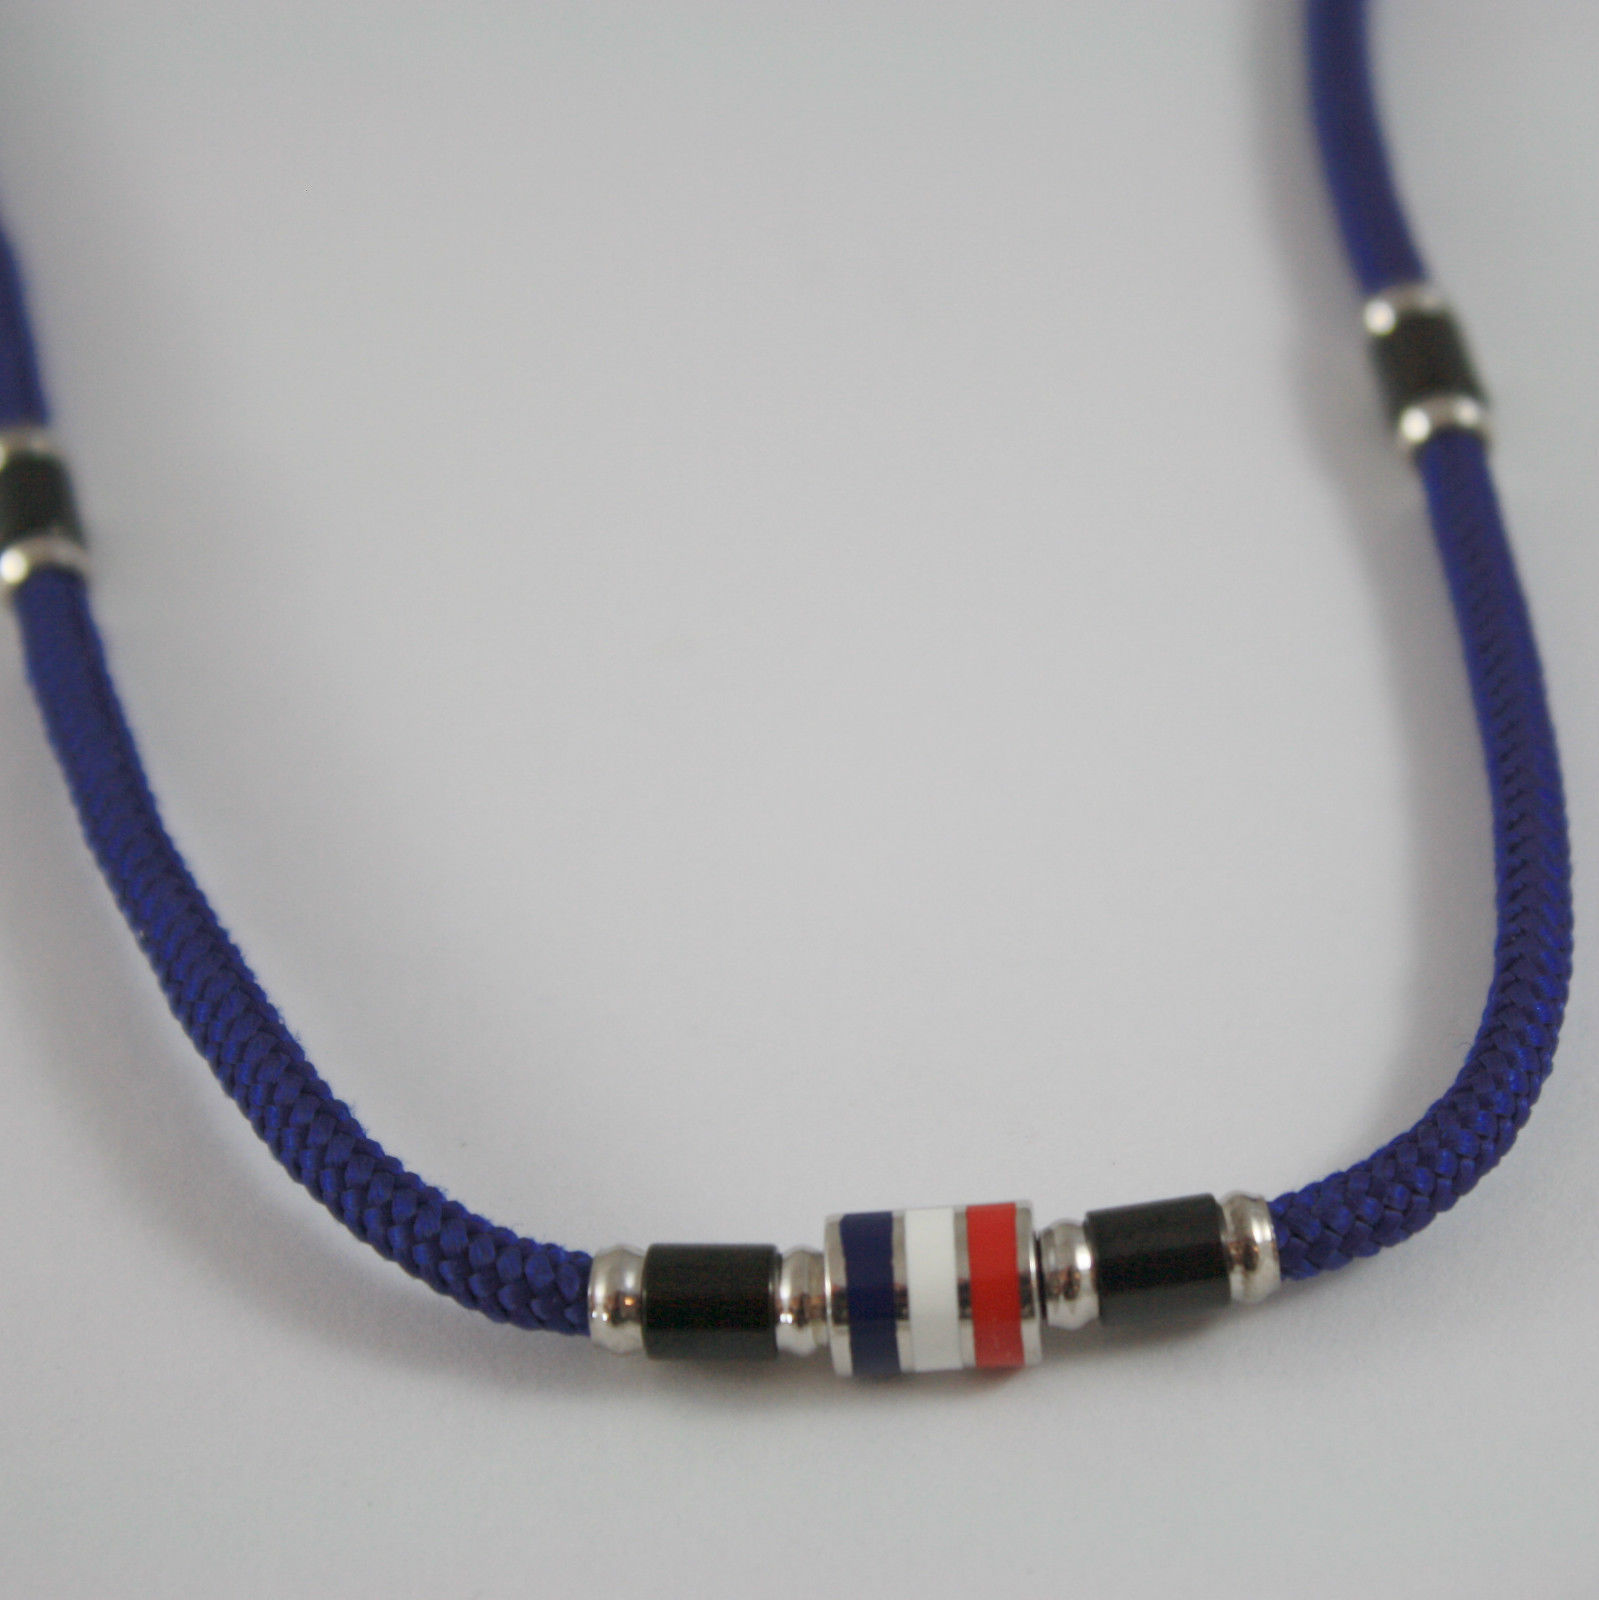 925 SILVER NECKLACE NAUTICAL BLUE ROPE WITH GLAZED FLAG BY ZANCAN MADE IN ITALY